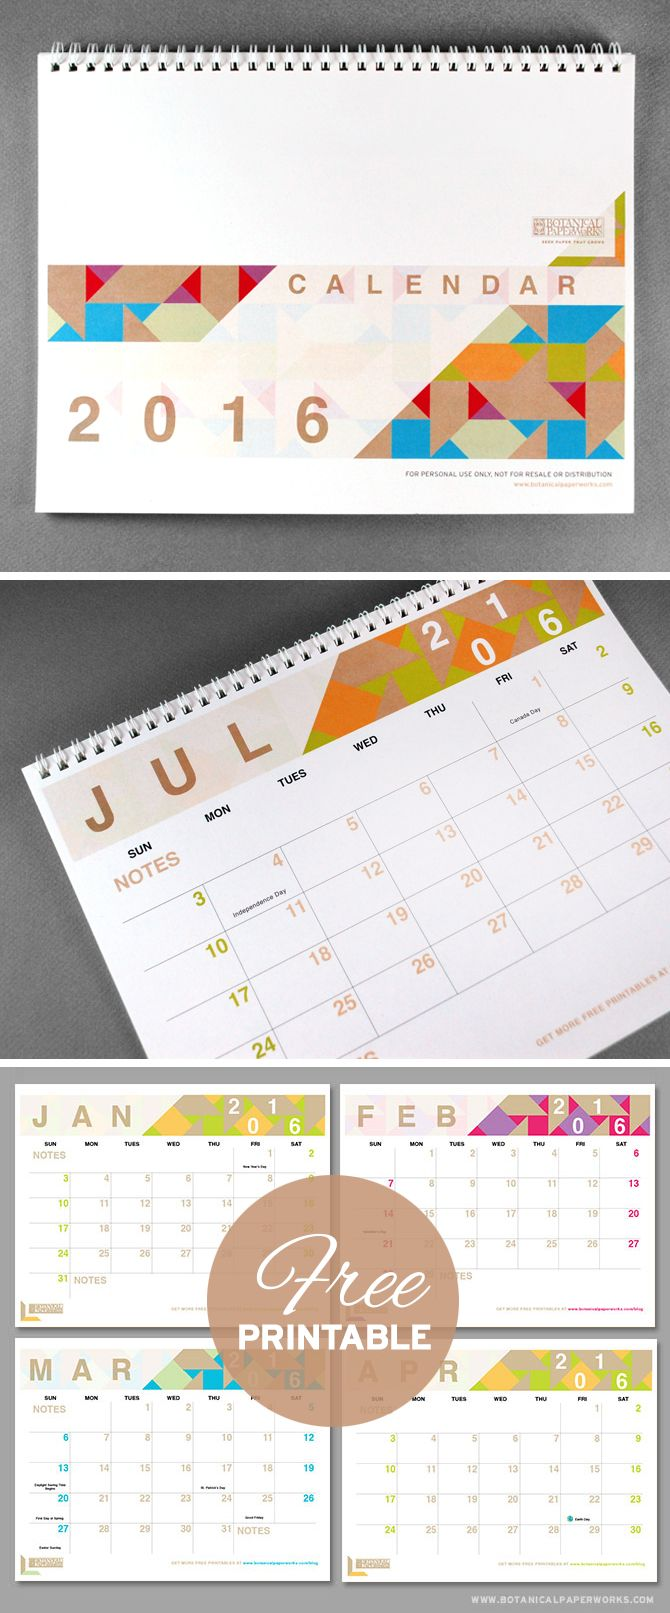 {free printables} Three Stylish 2016 Calendars - With bright pops of colour and a chic shapes and designs, the #Geometric #Calendar is another one of our most popular #freeprintables that we're excited about offering for the year #2016. Download yours now!